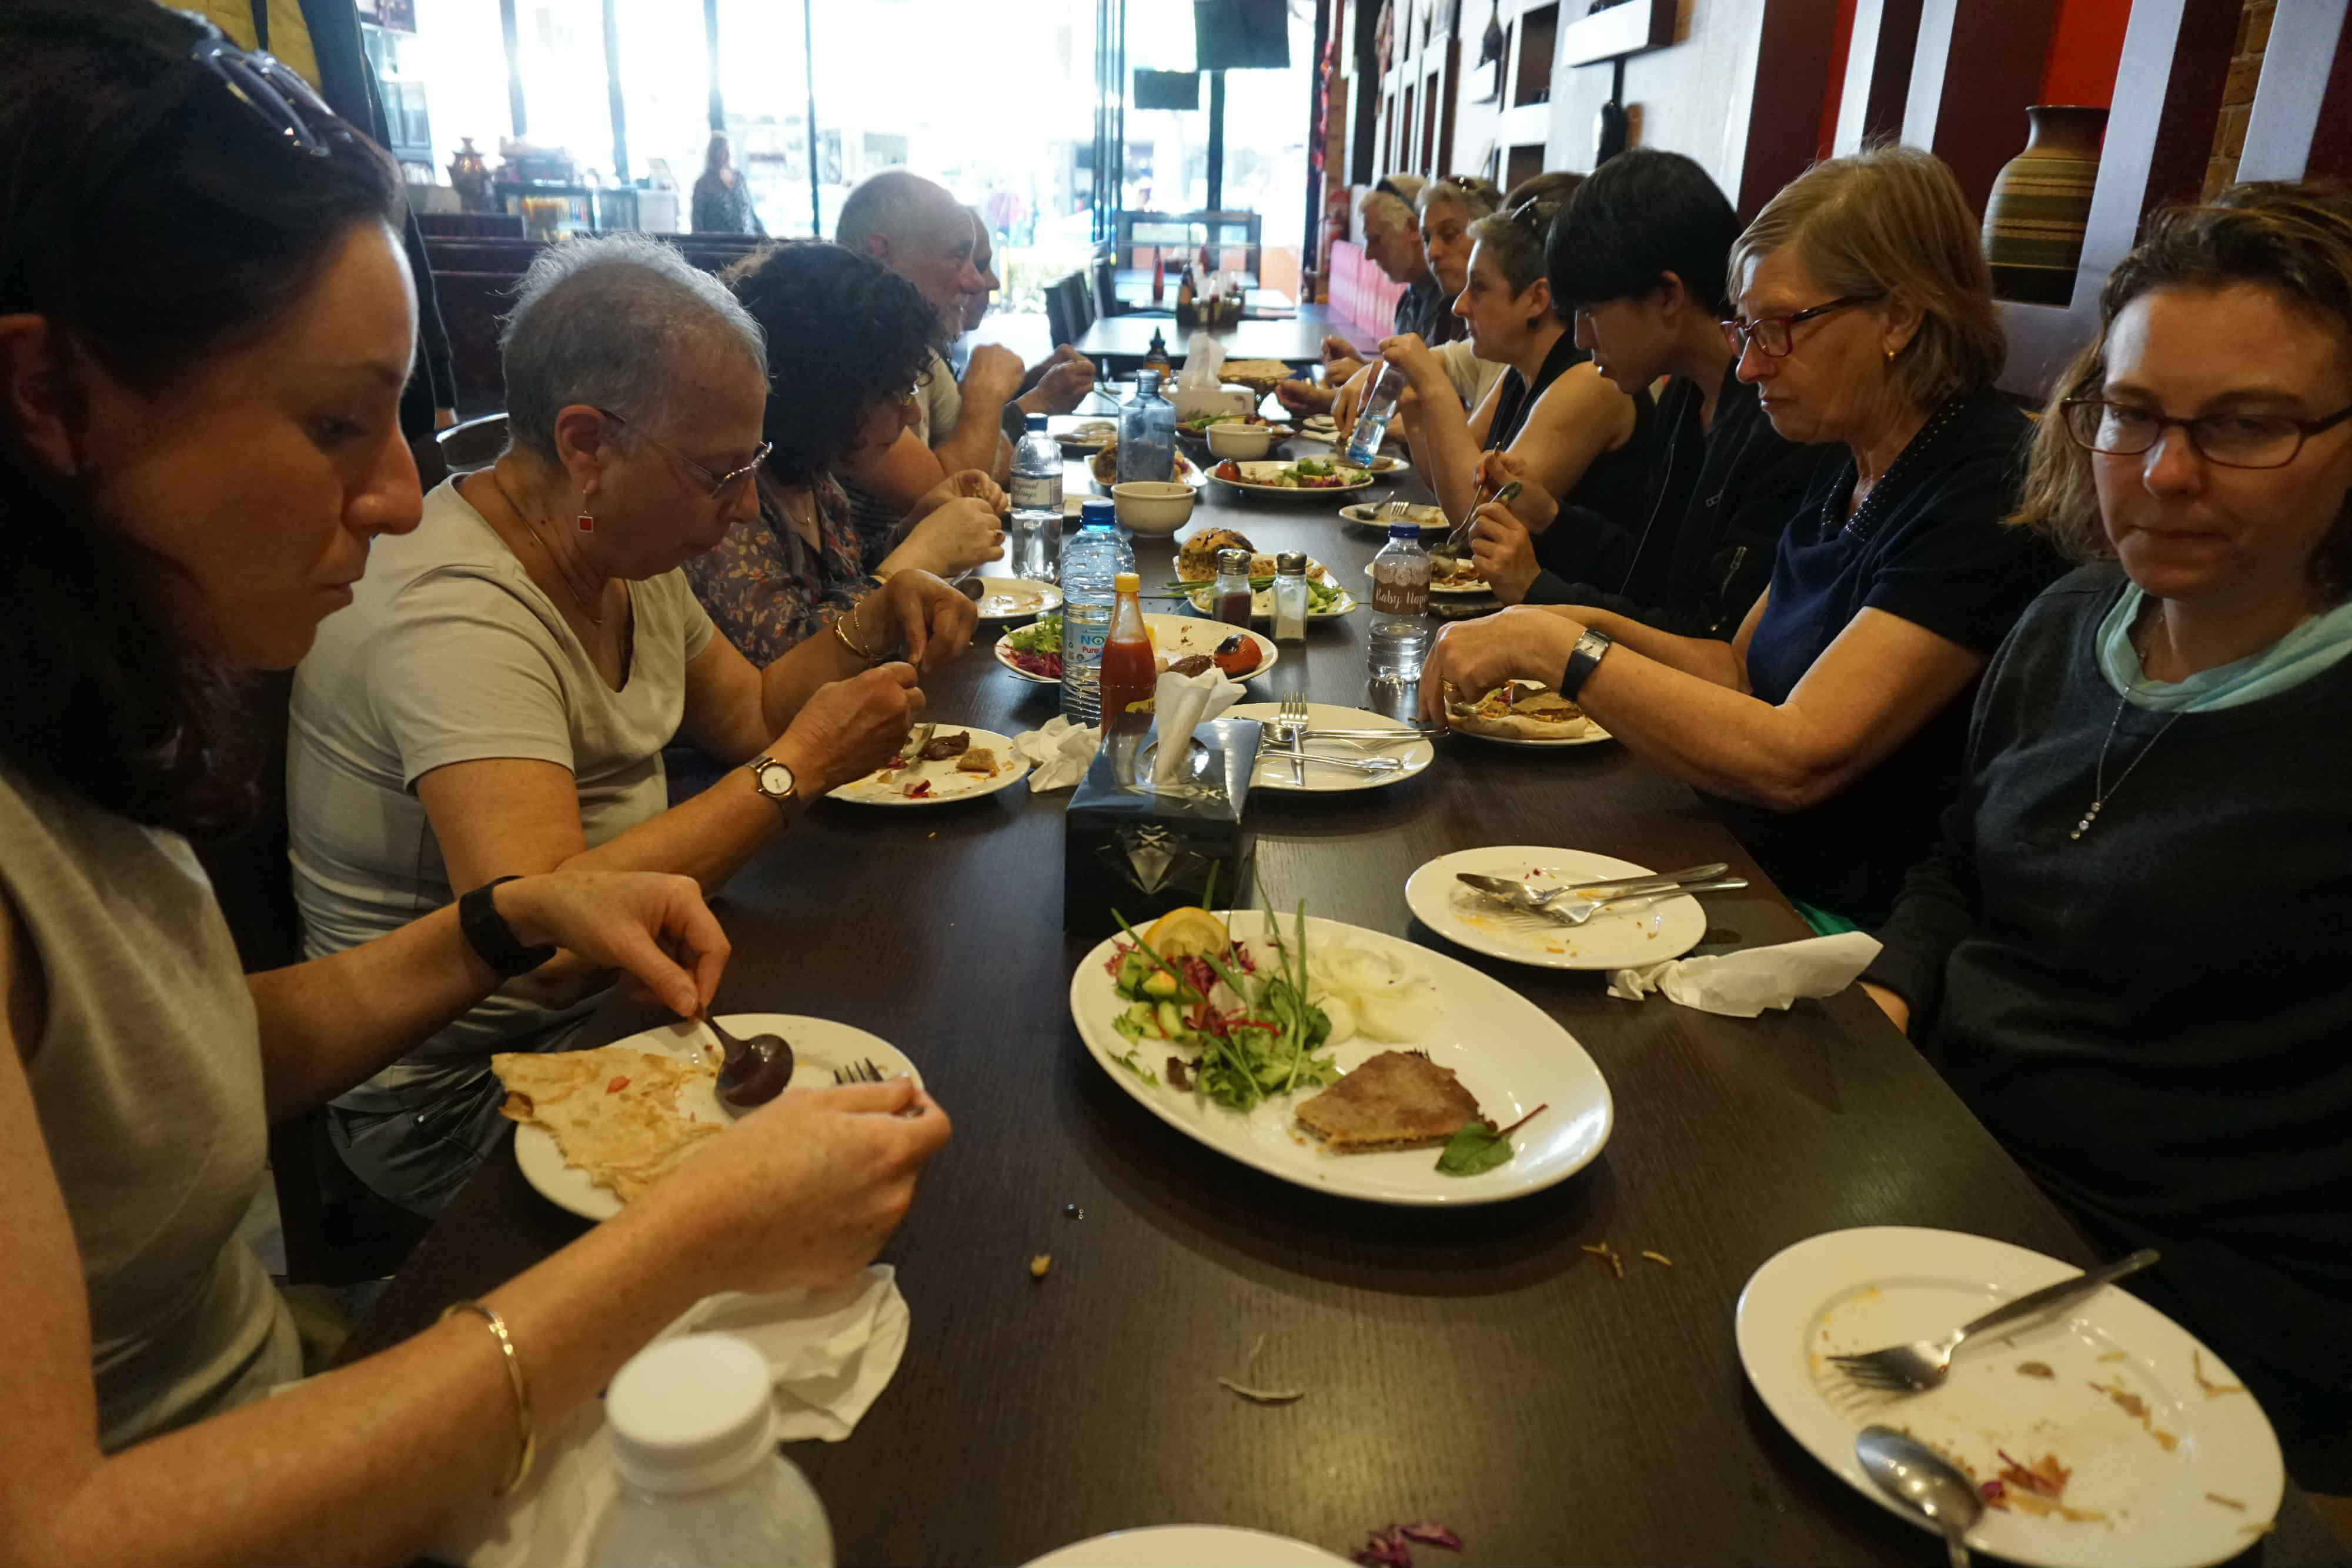 Customers enjoying a typical Persian meal in a traditional decorated Persian restaurant.